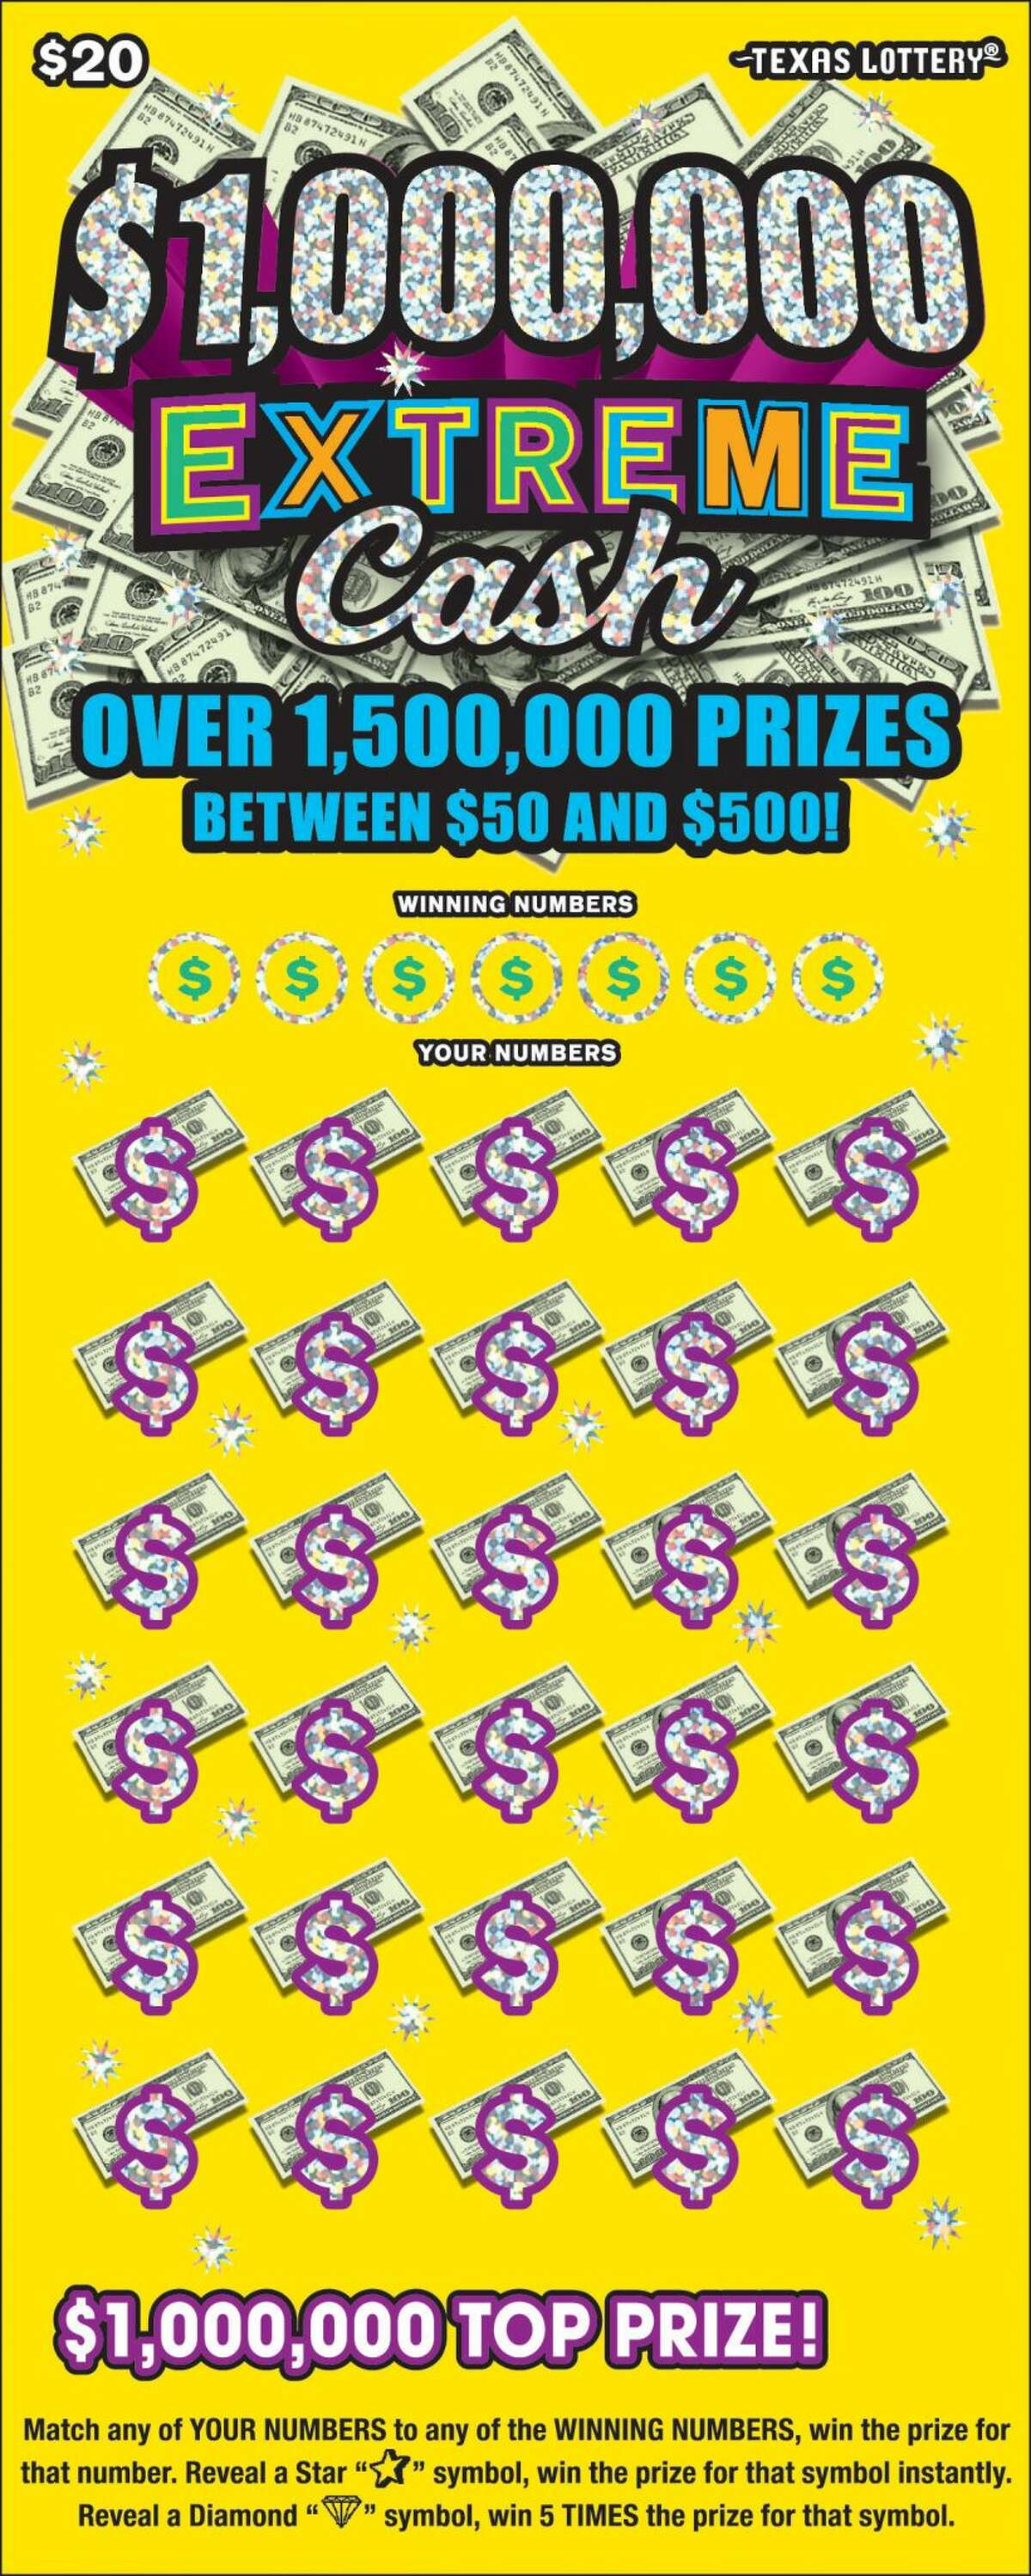 According to Texas Lottery, a resident claimed a top prize-winning ticket worth $1 million from the scratch-off game 1,000,000 Extreme Cash.